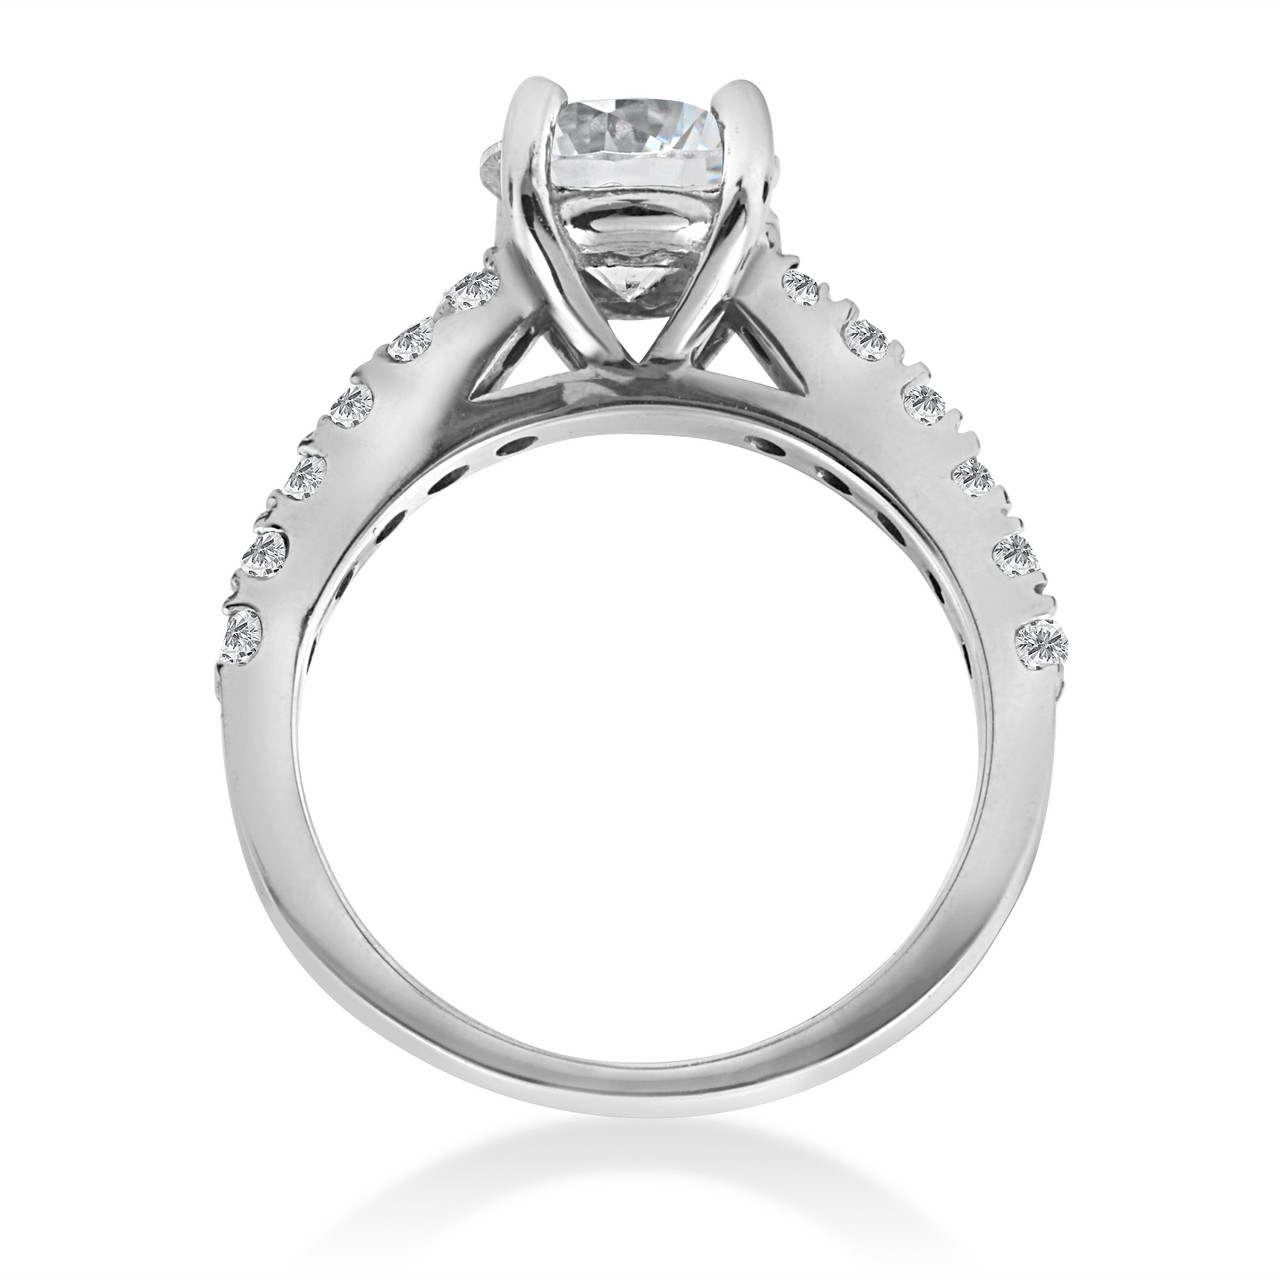 1 1 2 Carat Enement Ring | 1 1 2 Ct Diamond Solitaire With Accents Round Engagement Ring 14k